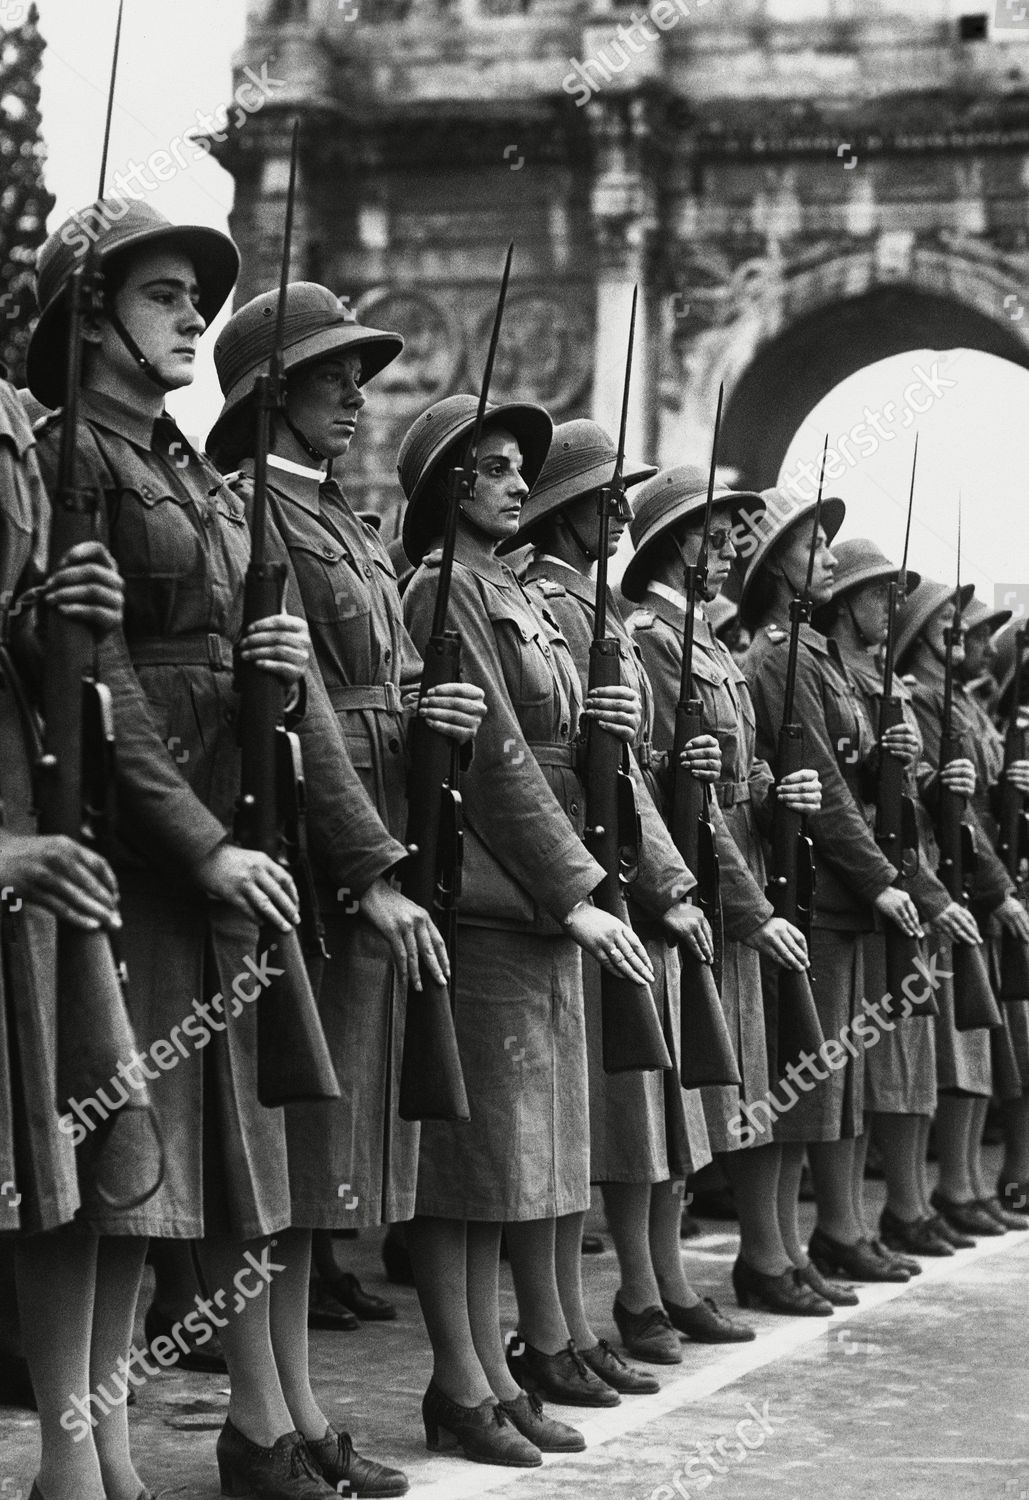 70000 fascist women girls marched past ...